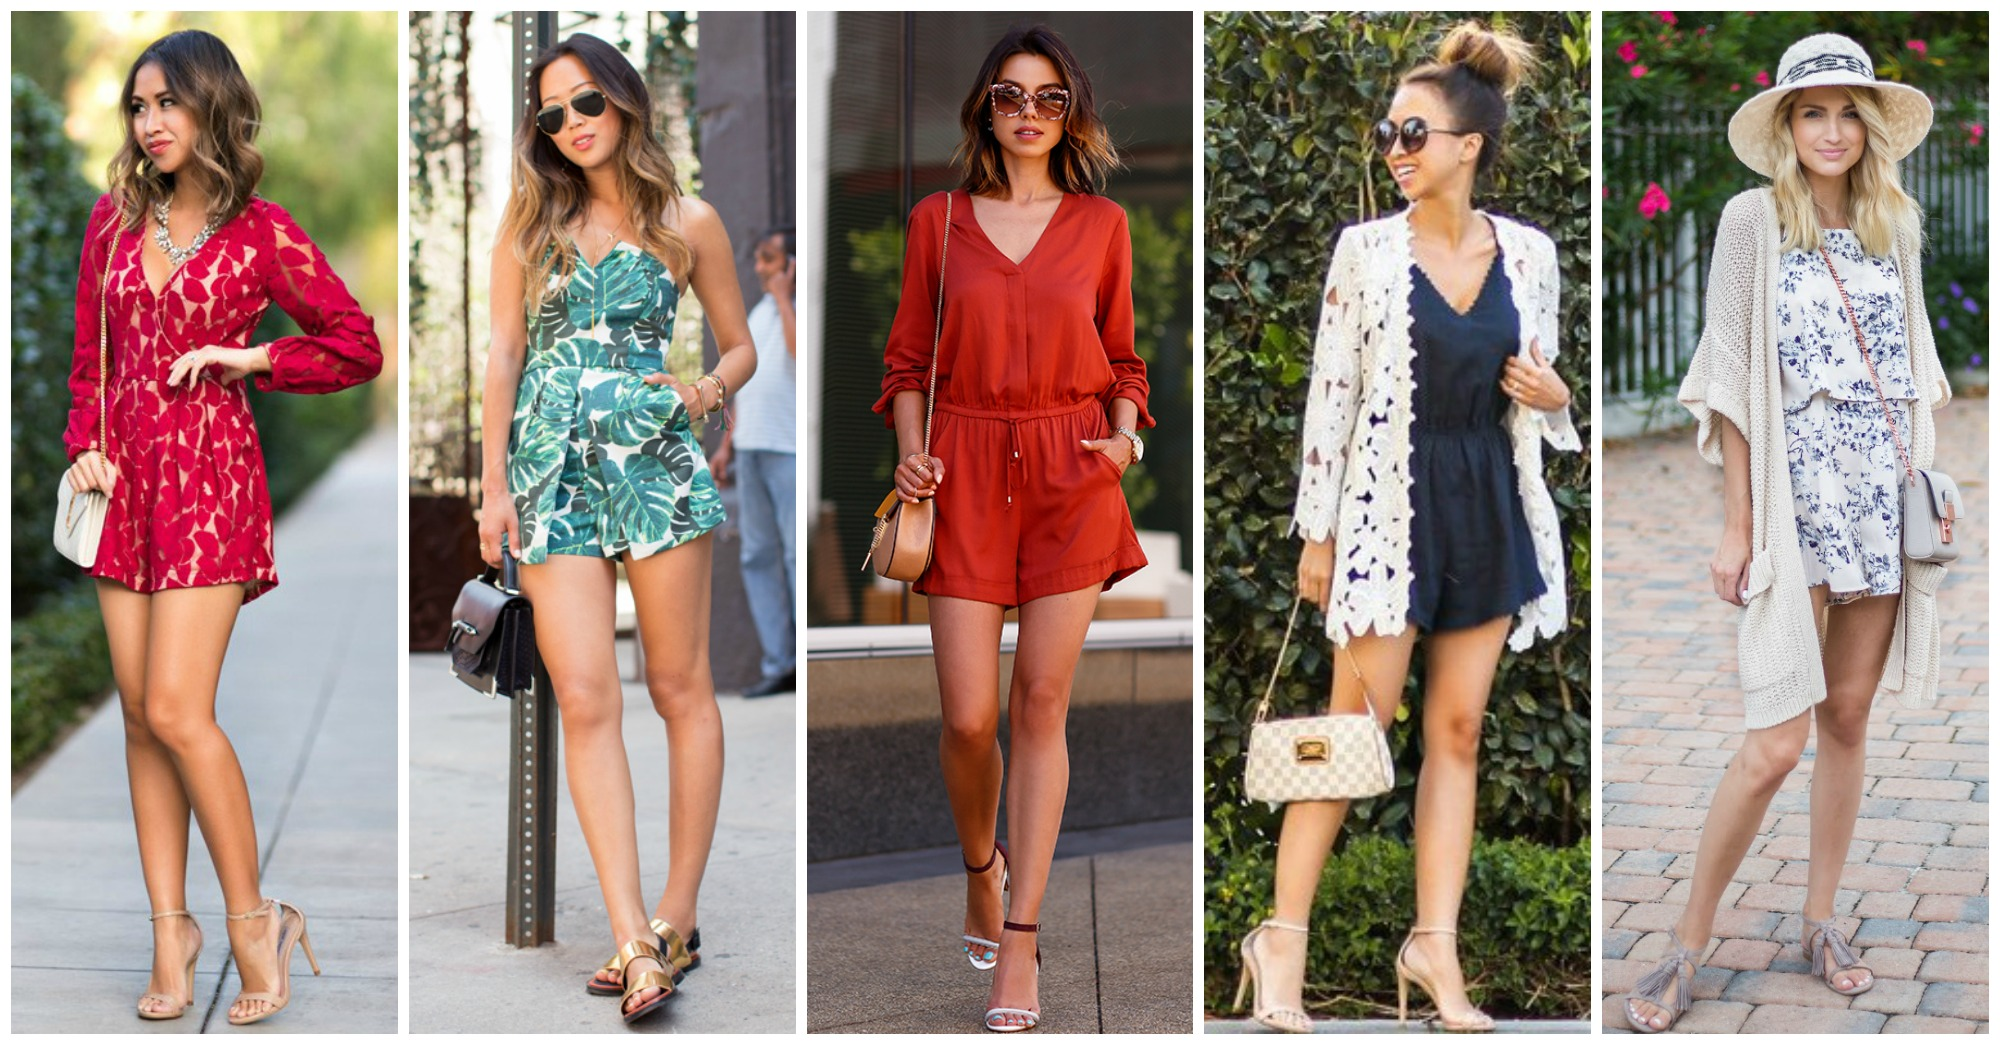 15 Street Style Outfits with Chic Rompers to Copy this Spring